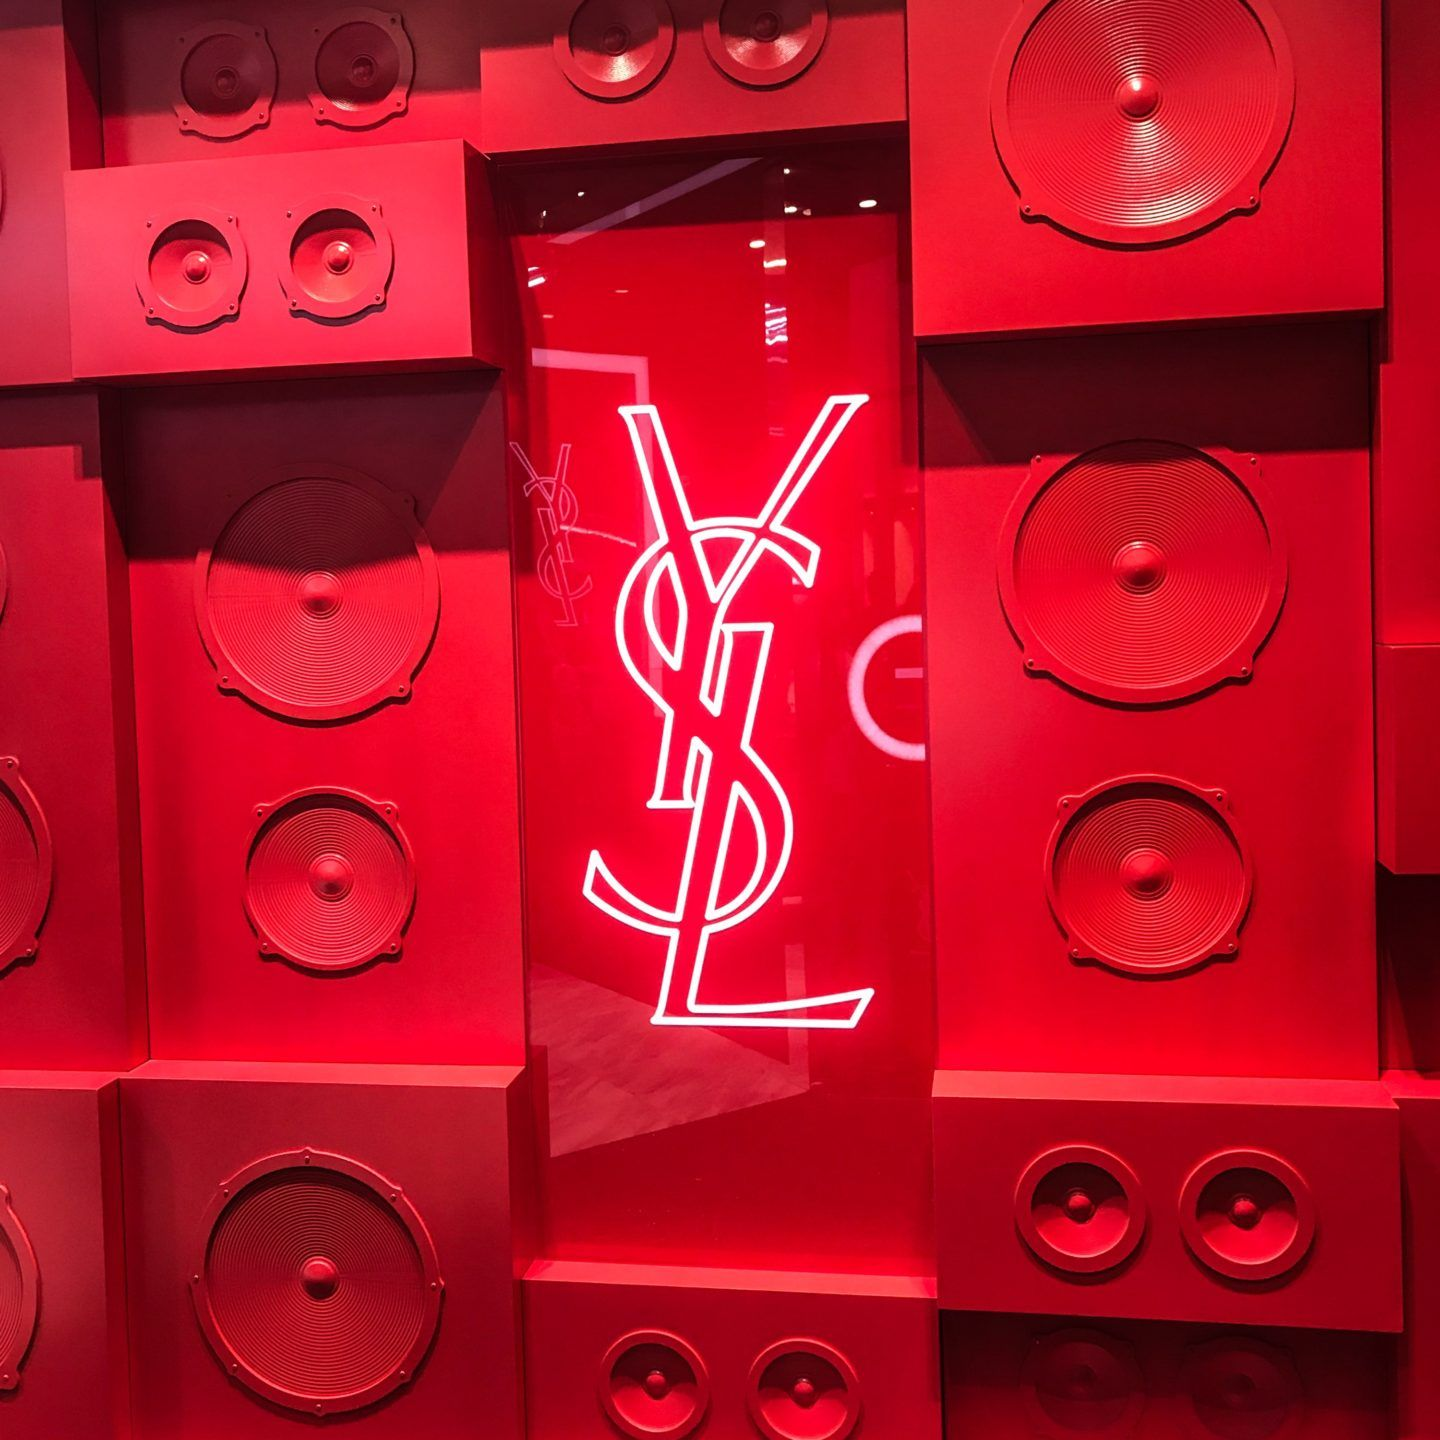 Ysl Beauty Pop Up Now Open At Square One Shopping Centre Just Sultan Red Aesthetic Red Aesthetic Grunge Red Wallpaper